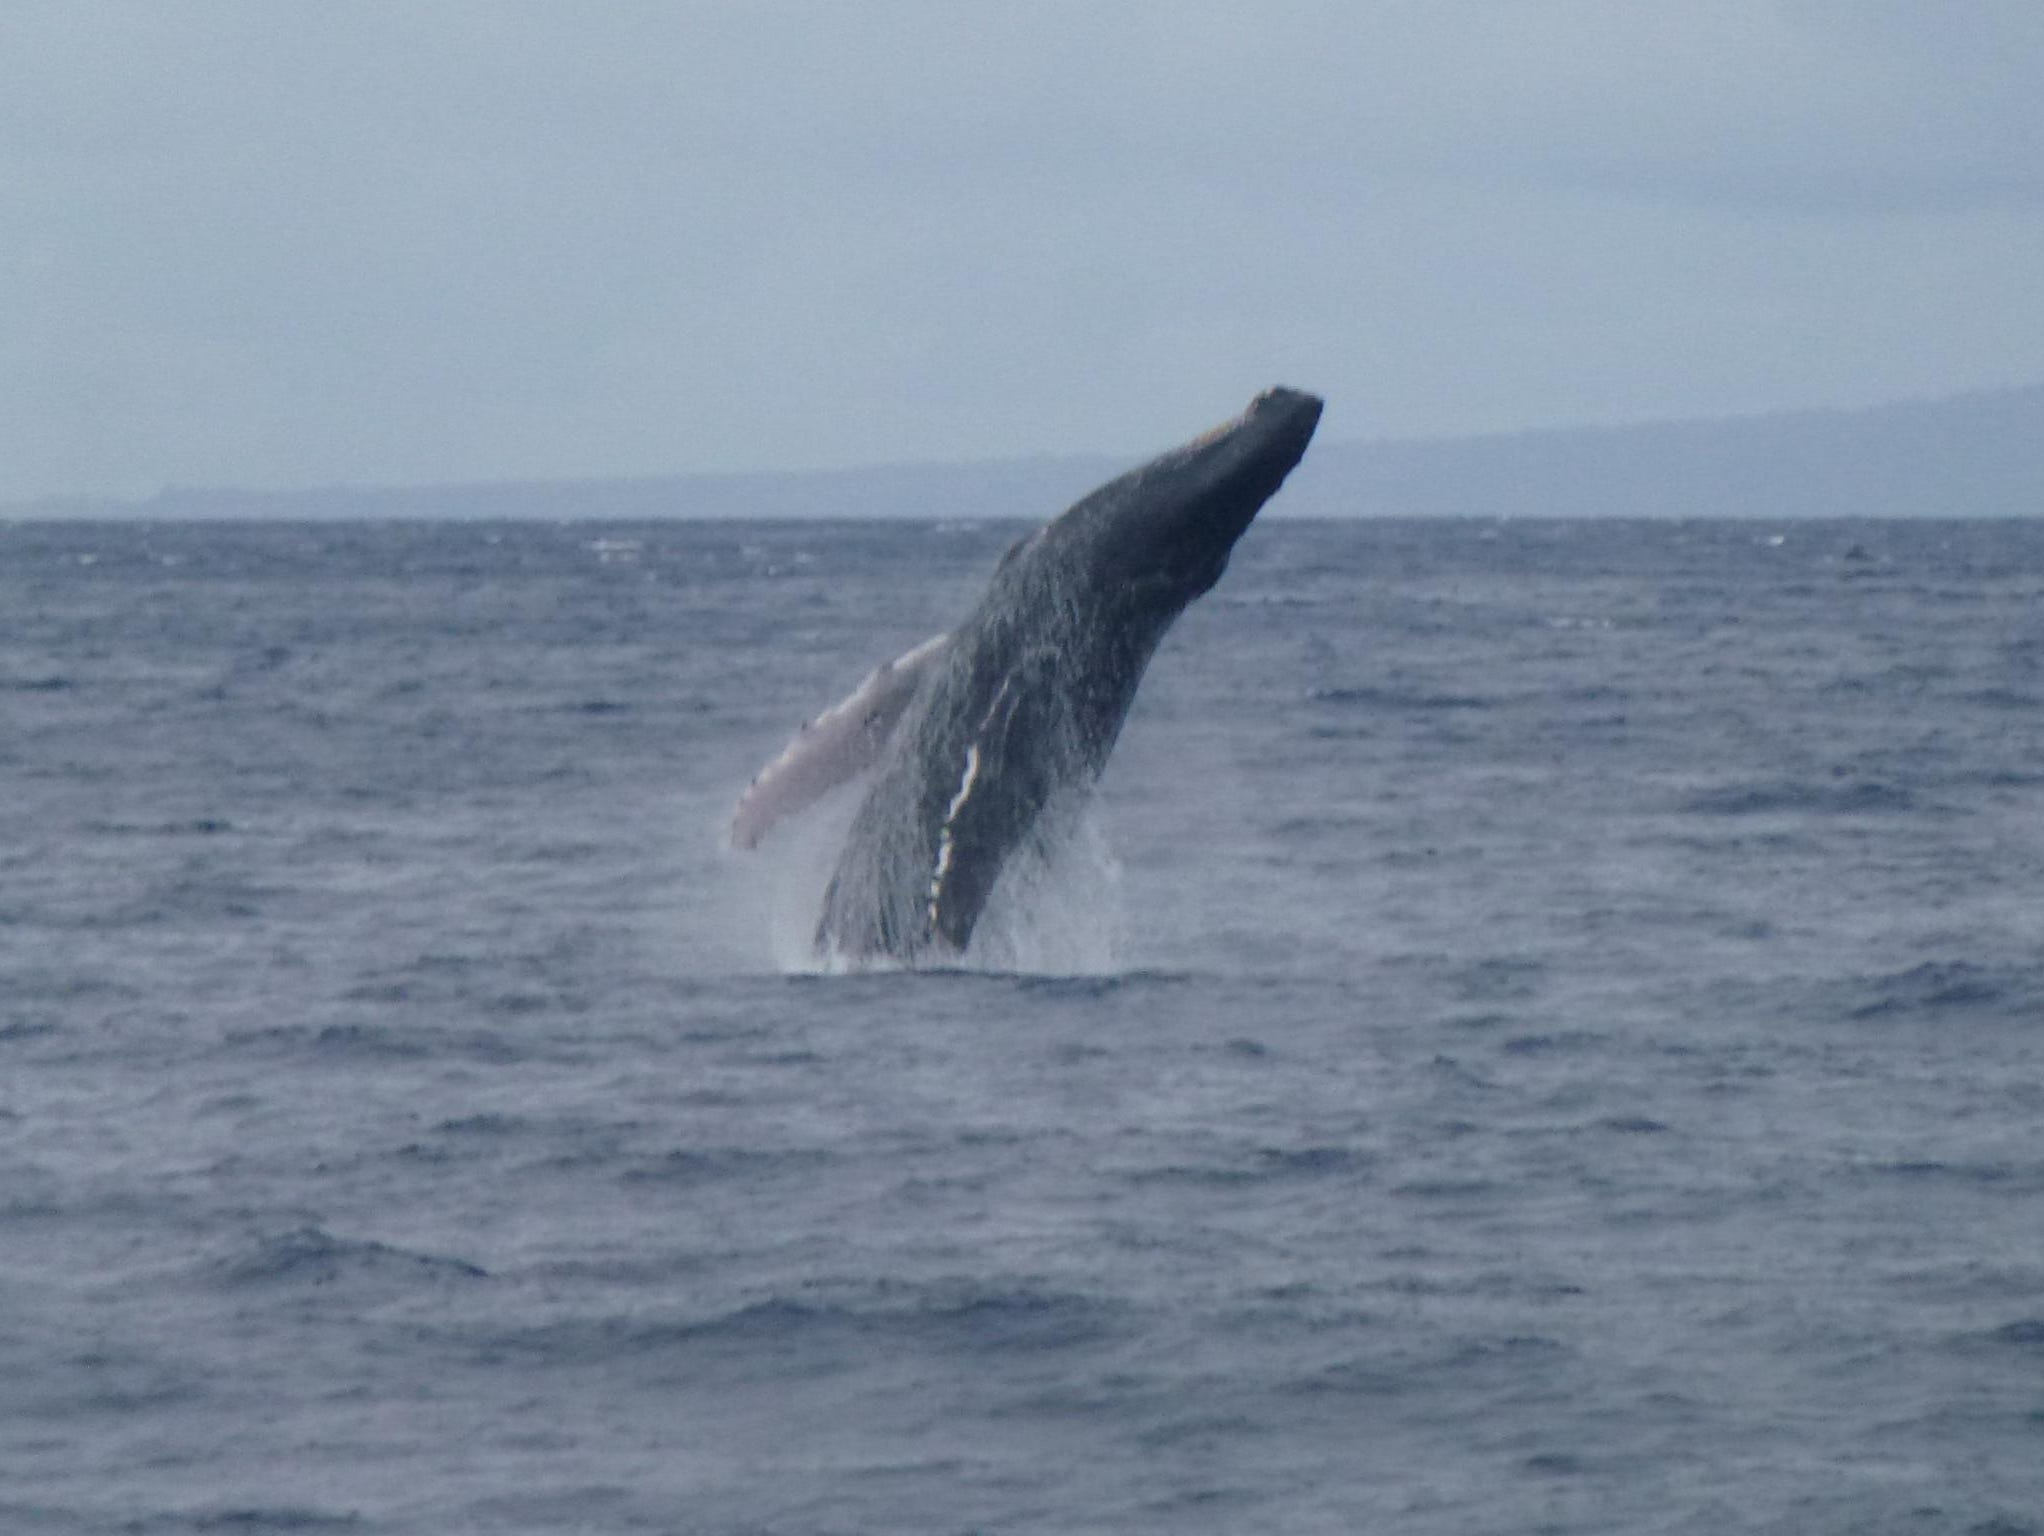 Here is a humpback whale breaching in the channel between the islands of Lana'i, Moloka'i and Maui.